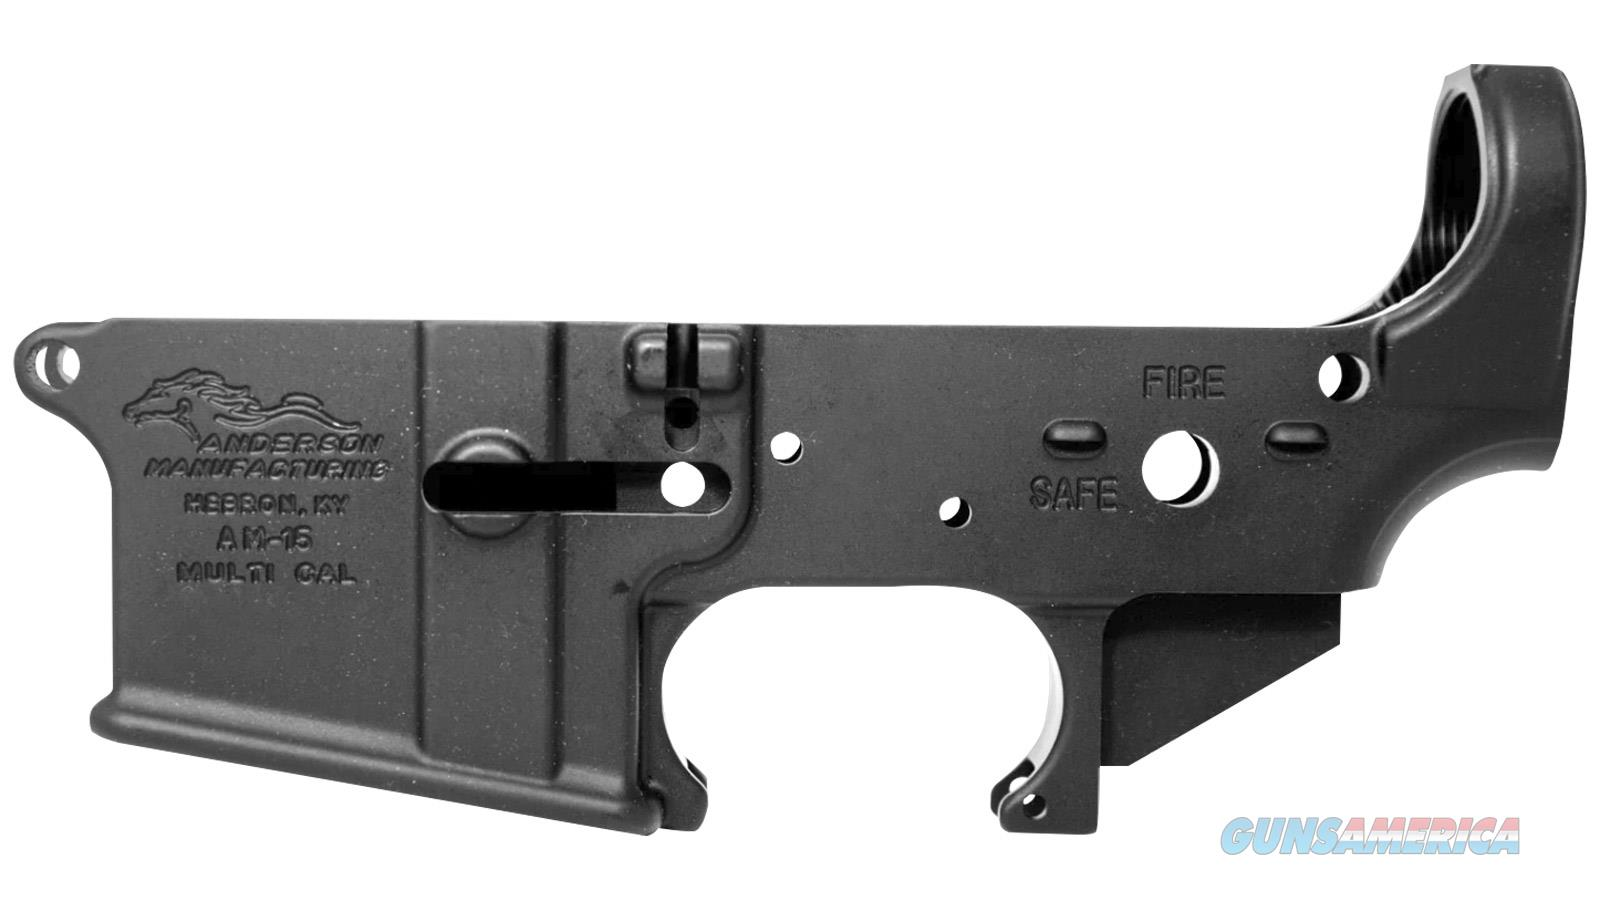 Anderson Mfg AM-15 Lower (D2-K067-A000-0P)  Guns > Rifles > AR-15 Rifles - Small Manufacturers > Lower Only